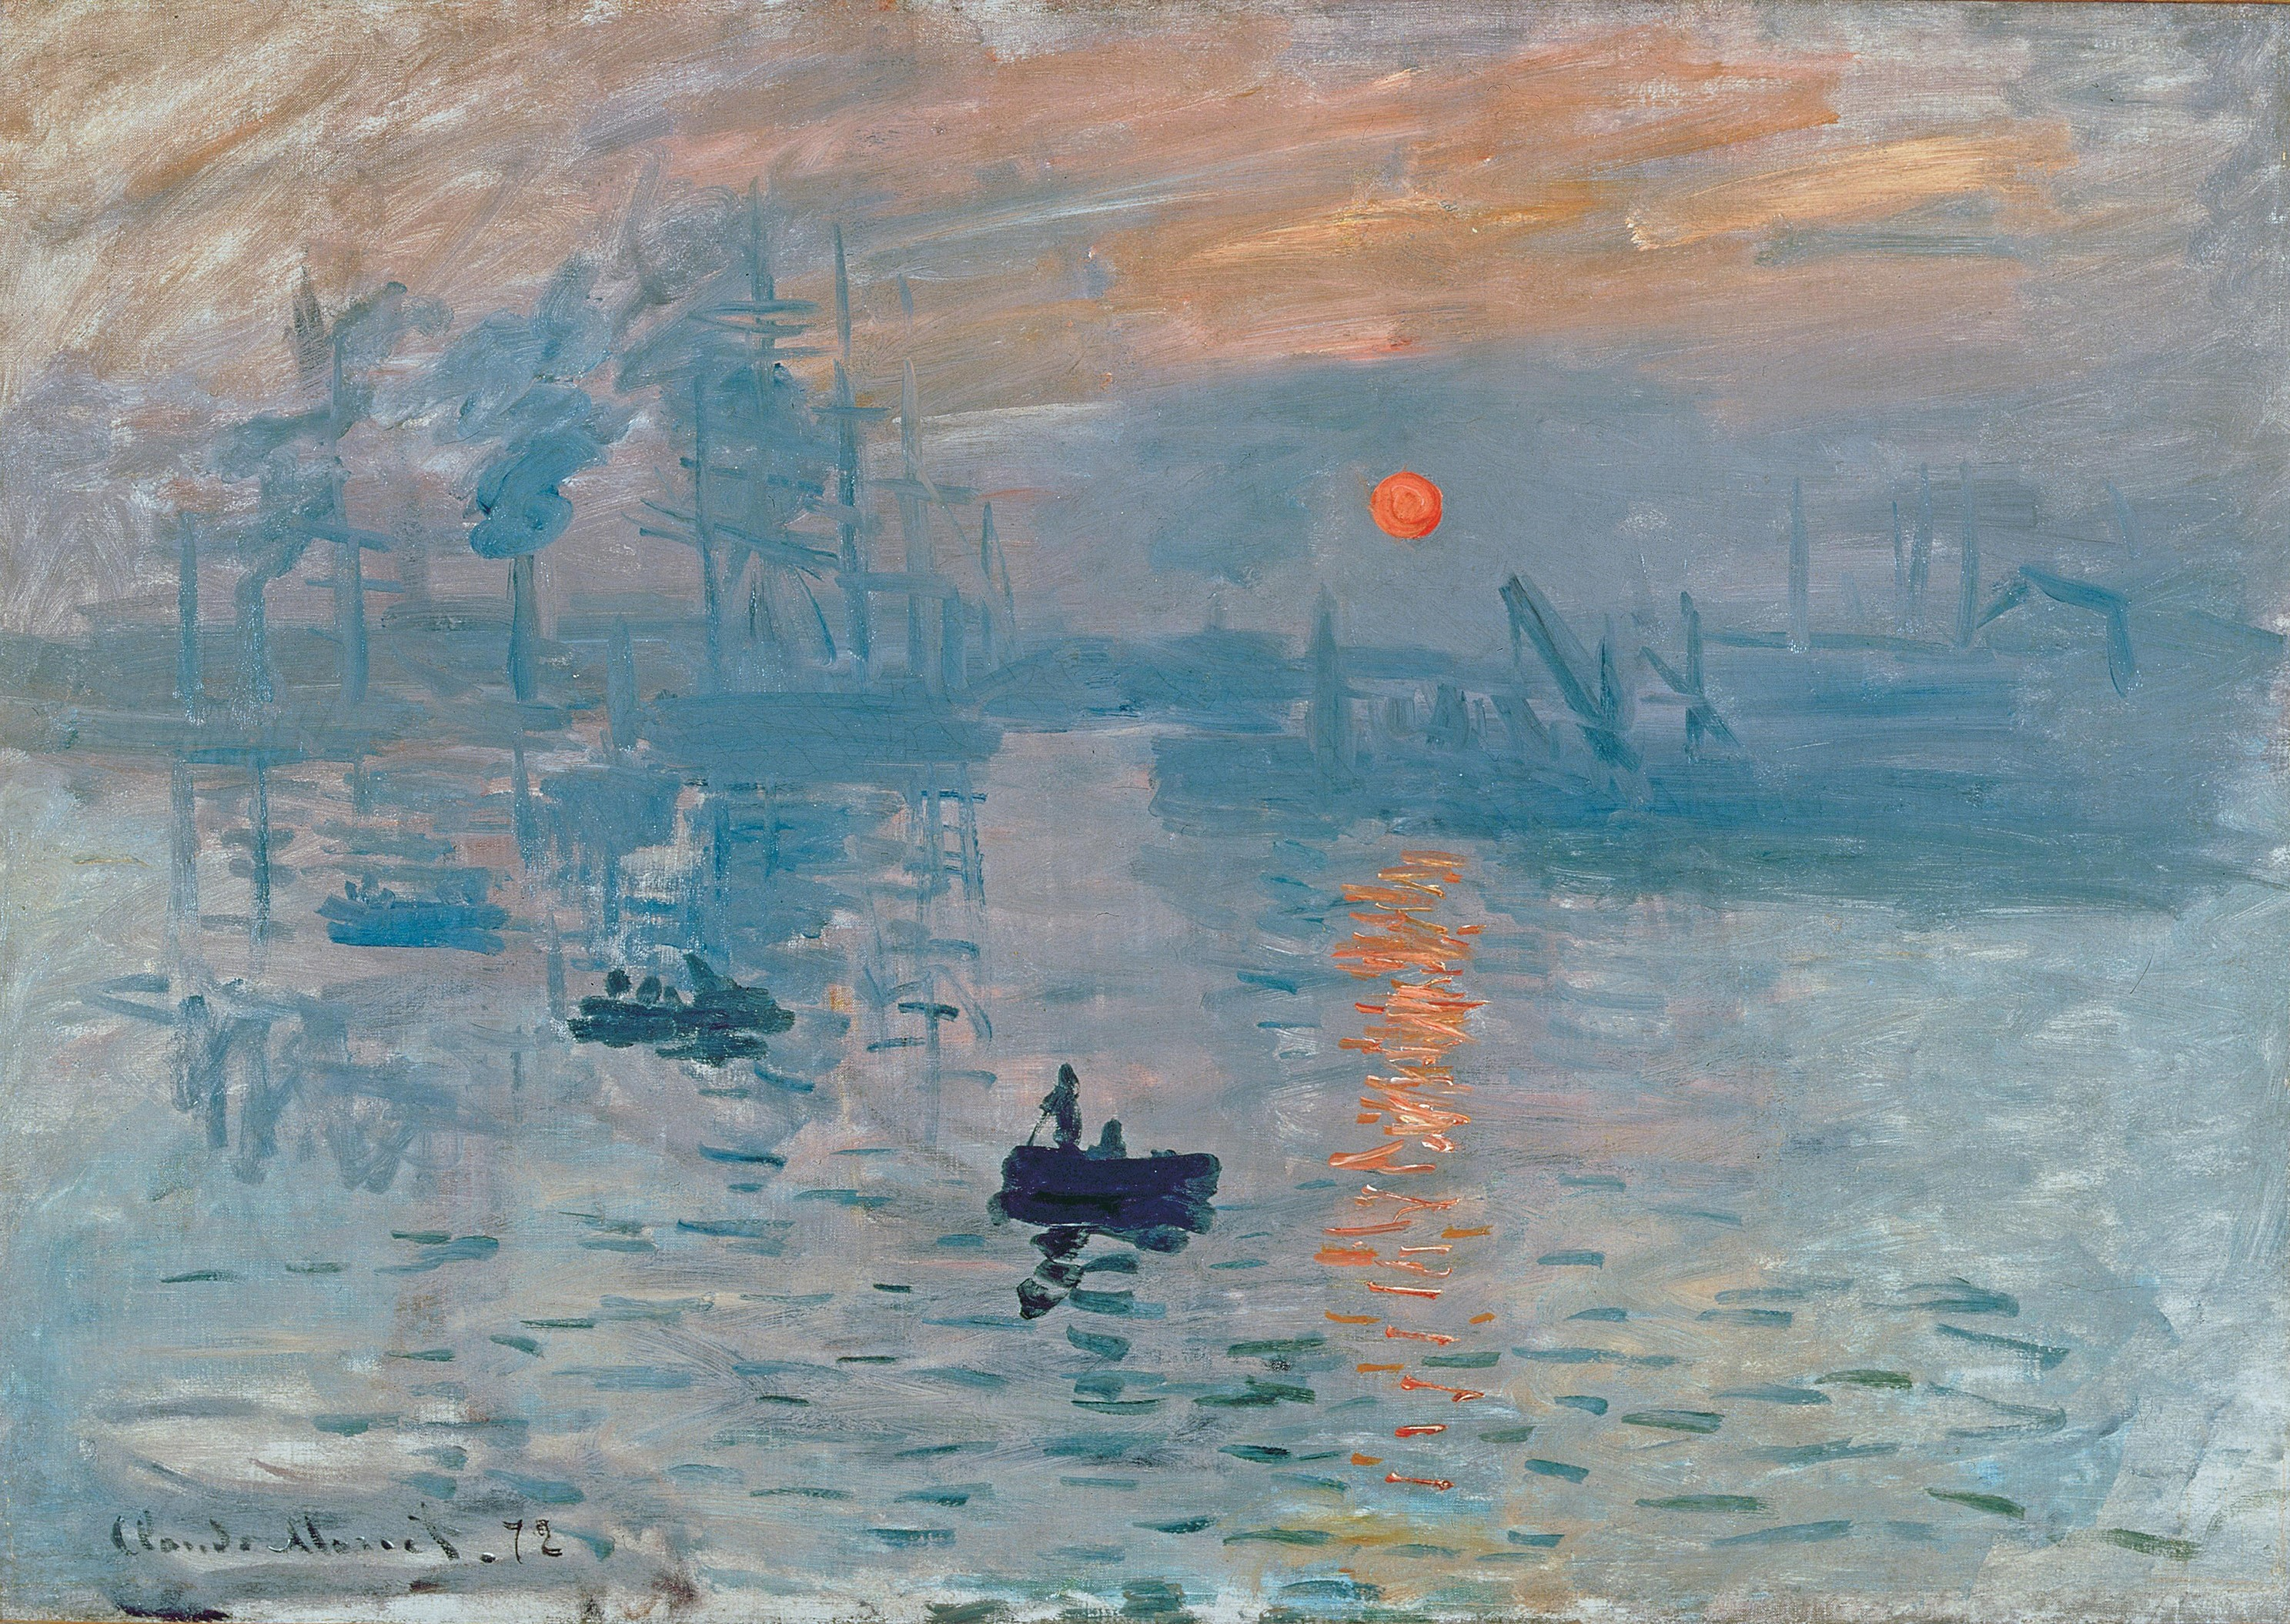 claude_monet_-_impression_sunrise_1872_impressionism_48x63cm_small